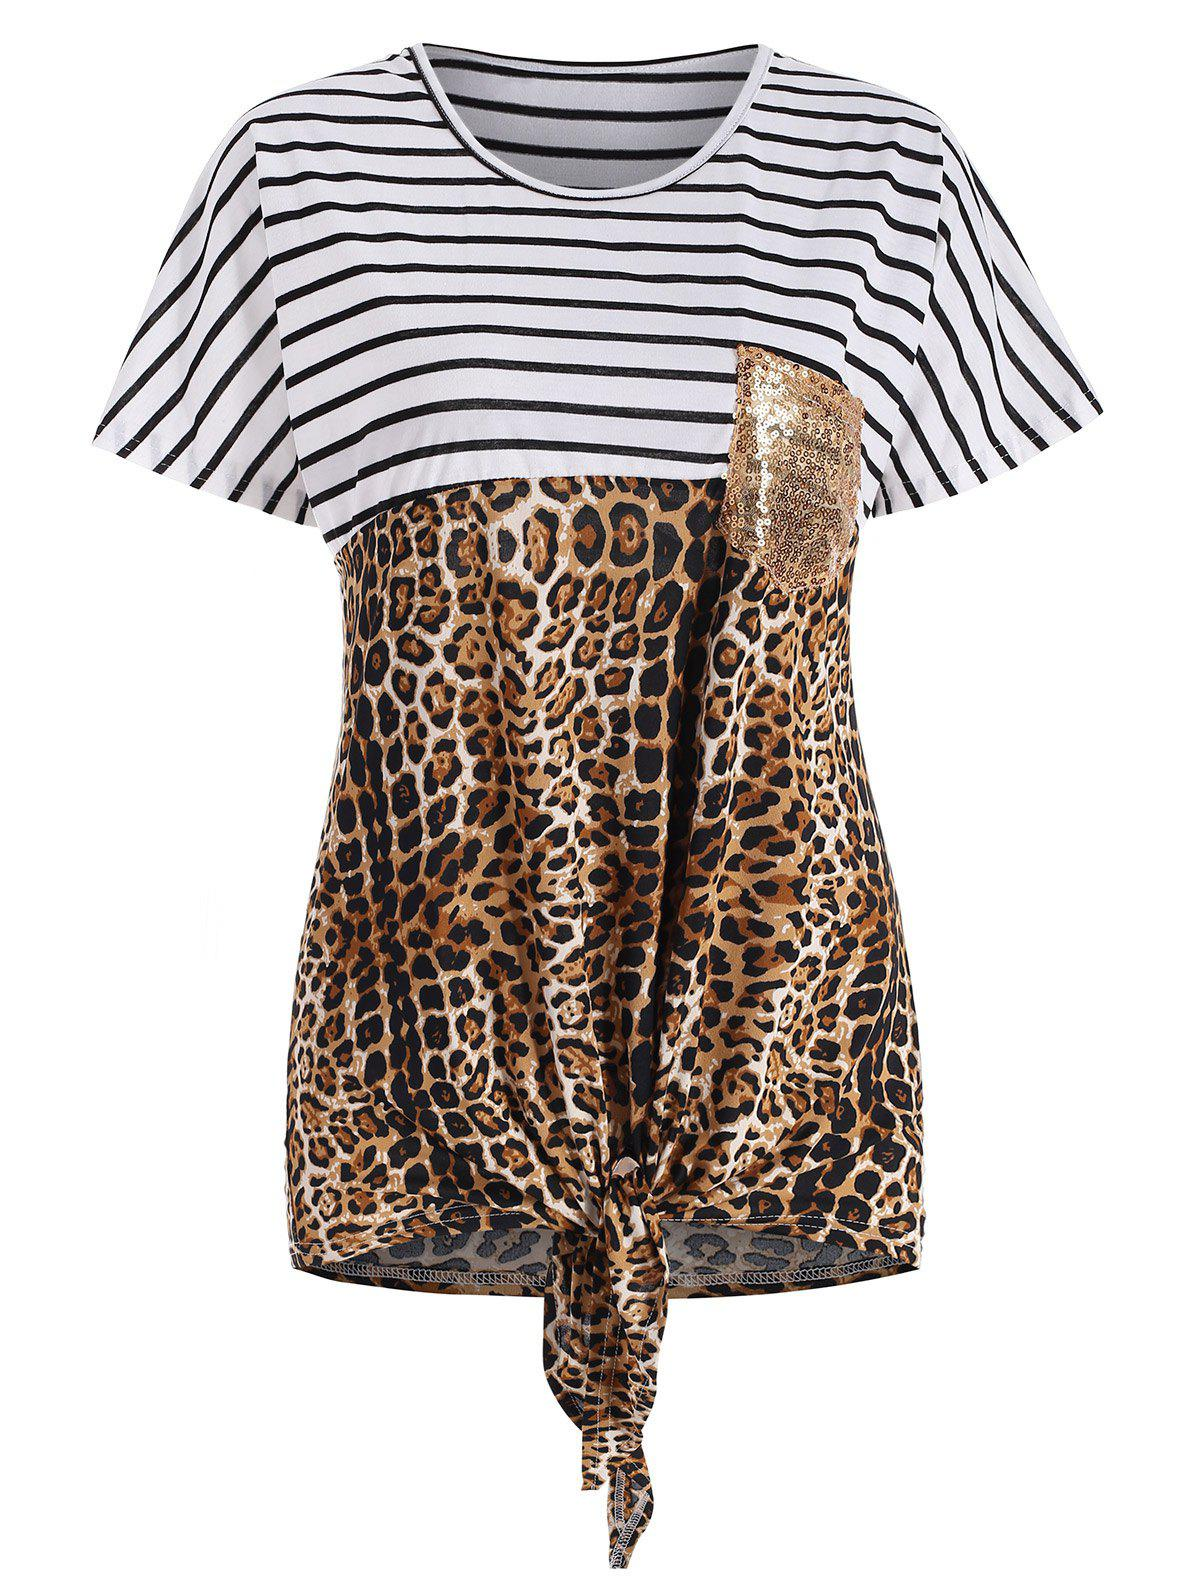 New Striped and Leopard Print Knot Front Sequined Pocket T-shirt